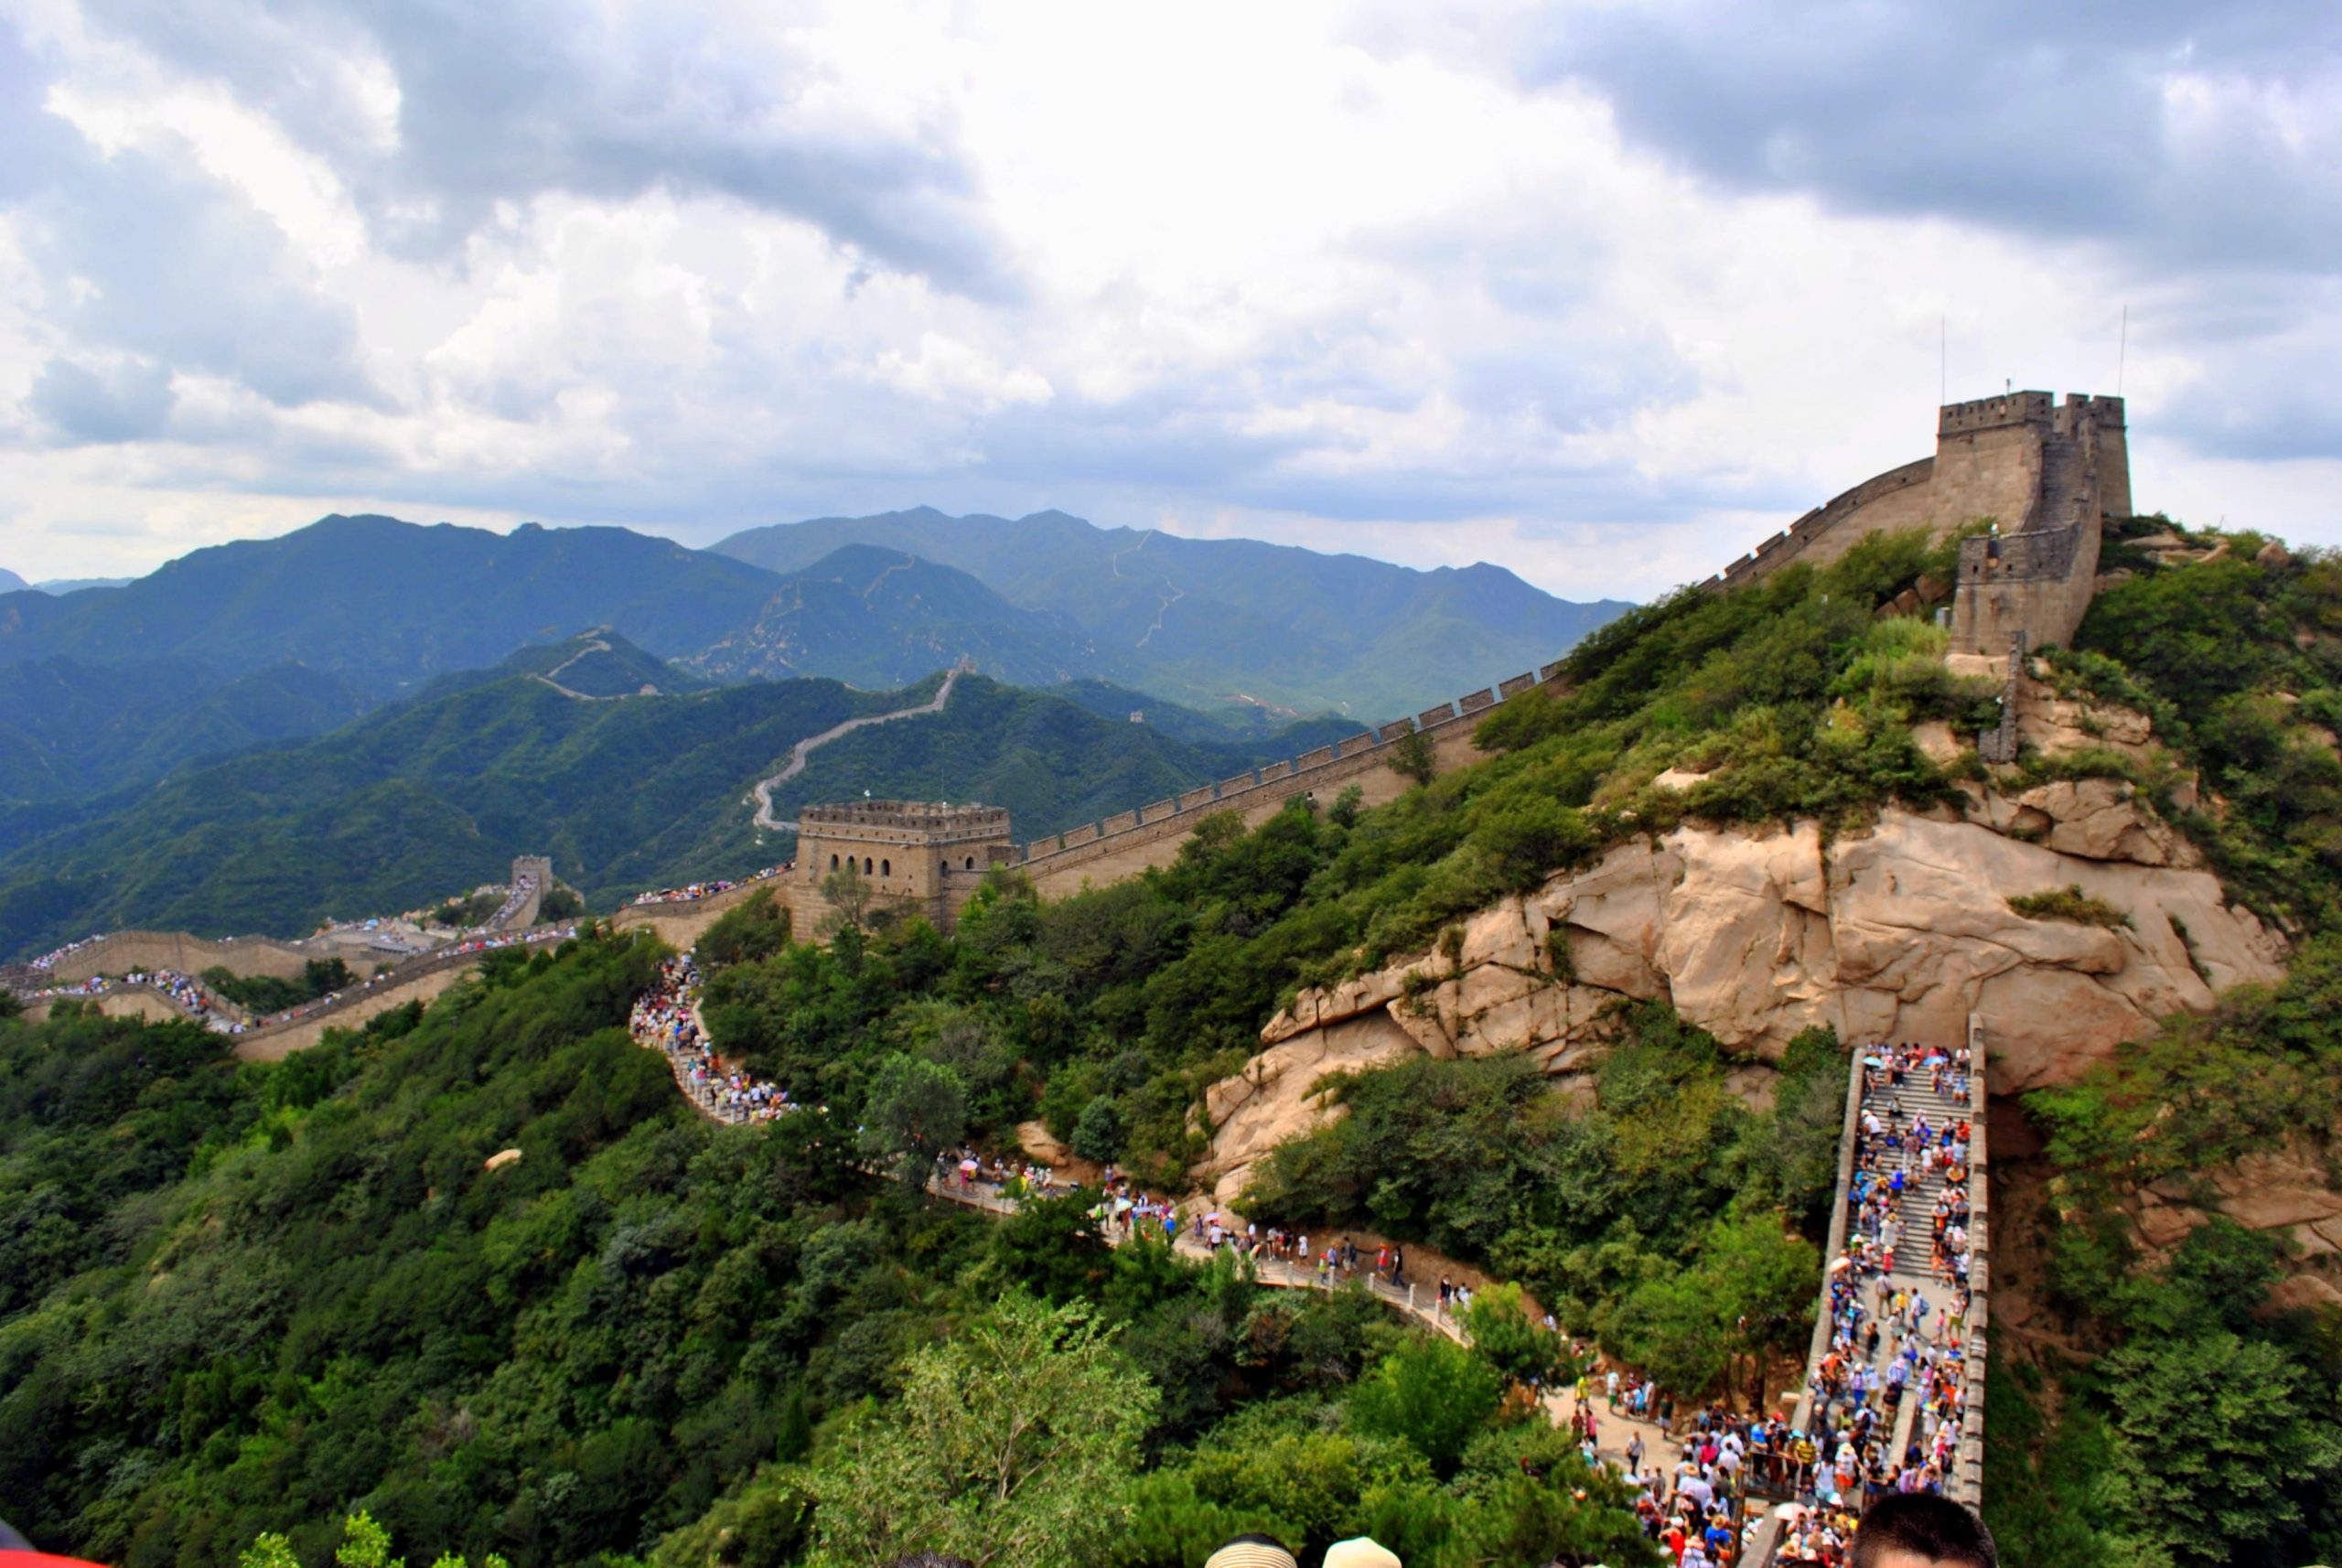 A view of the Great Wall